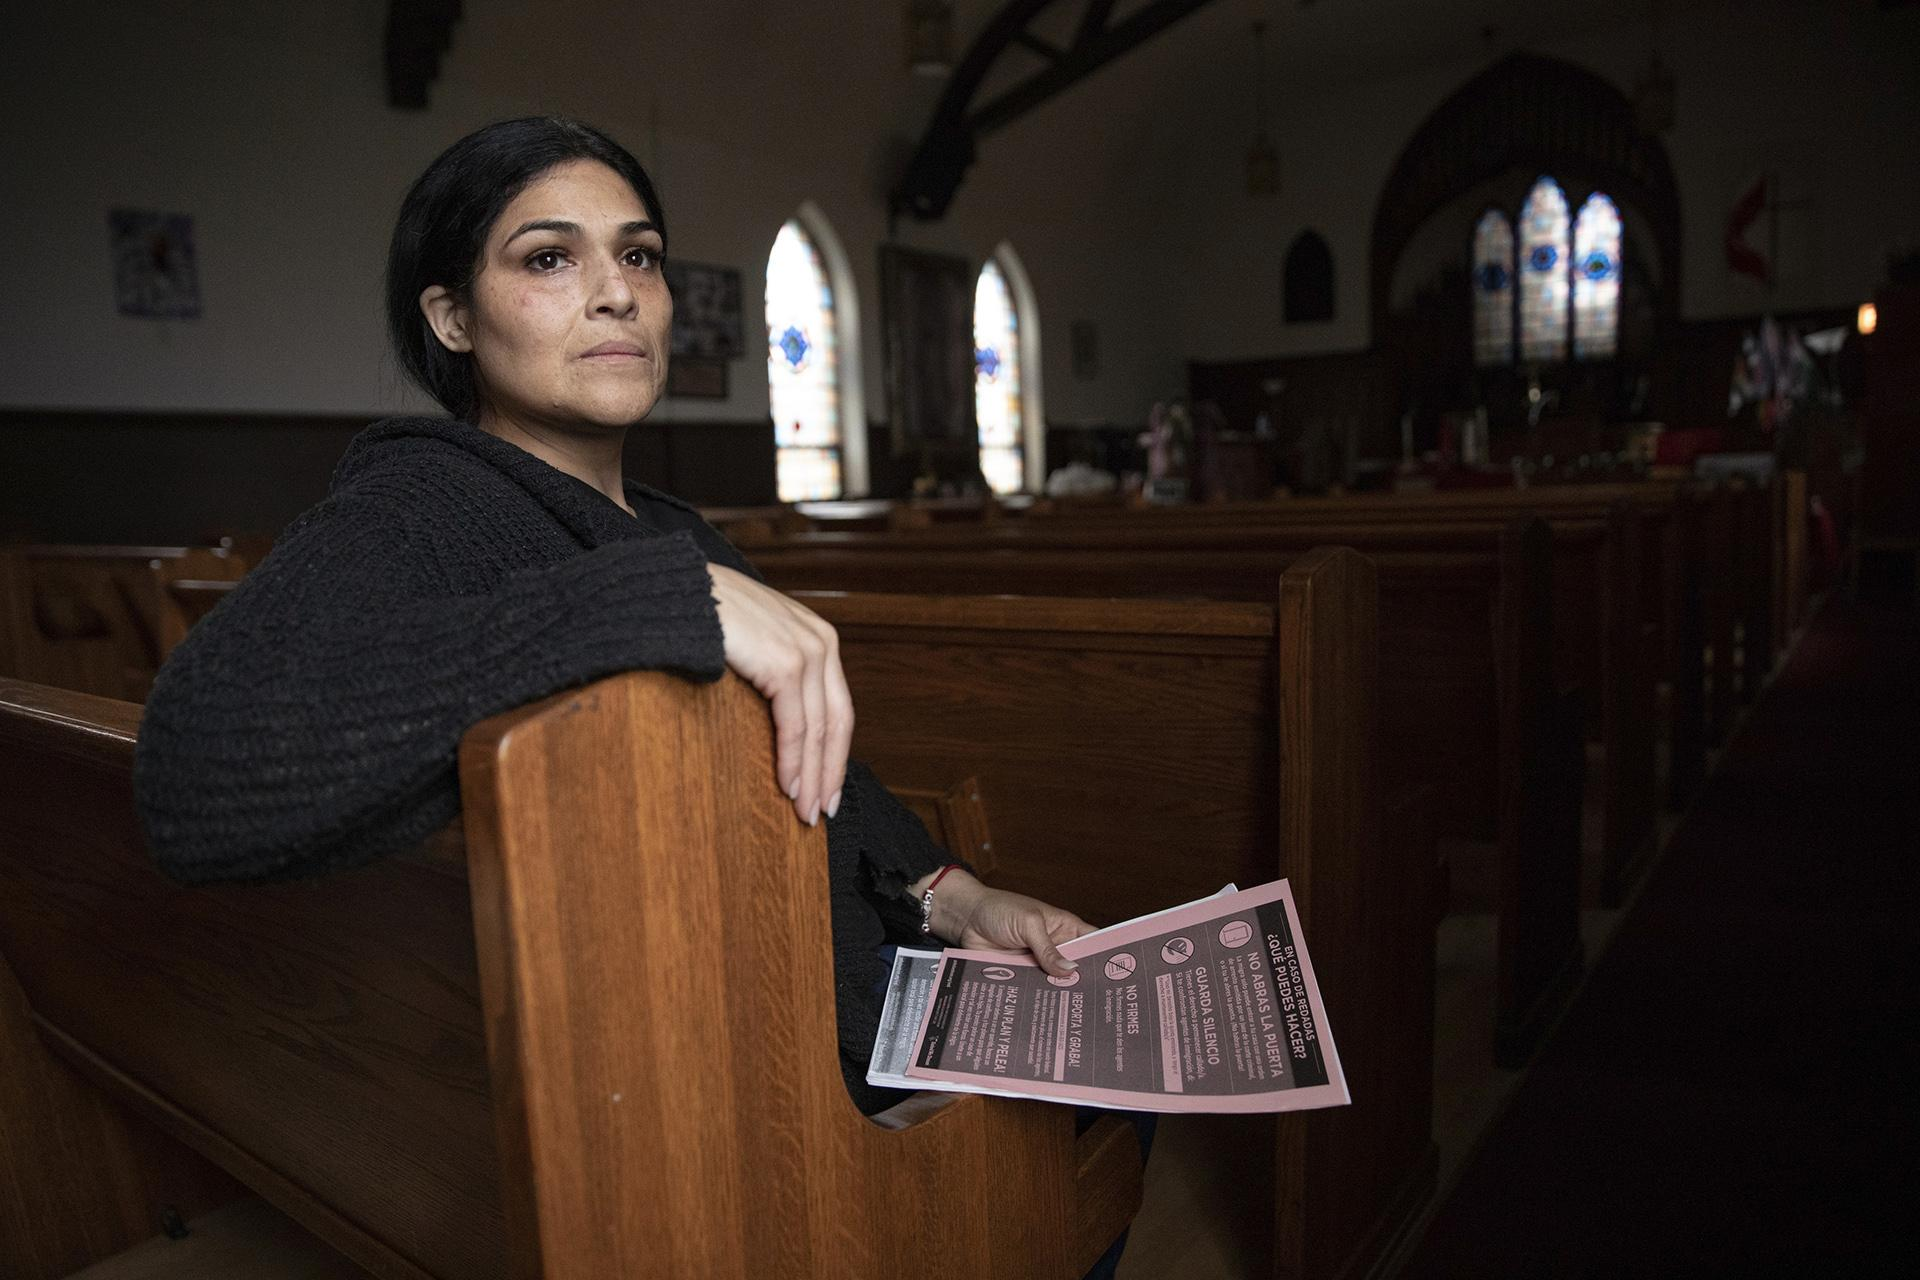 In this Wednesday, June 19, 2019 photo, Cecilia Garcia, member of La Familia Latina Unida and founder of Family Reunification not Deportation, poses for a portrait after an emergency meeting plan of action on how to defend and protect undocumented communities of deportation ahead of President Donald J. Trump's announcement on immigration at Lincoln Methodist Church in Chicago's Pilsen neighborhood. (AP Photo / Amr Alfiky)